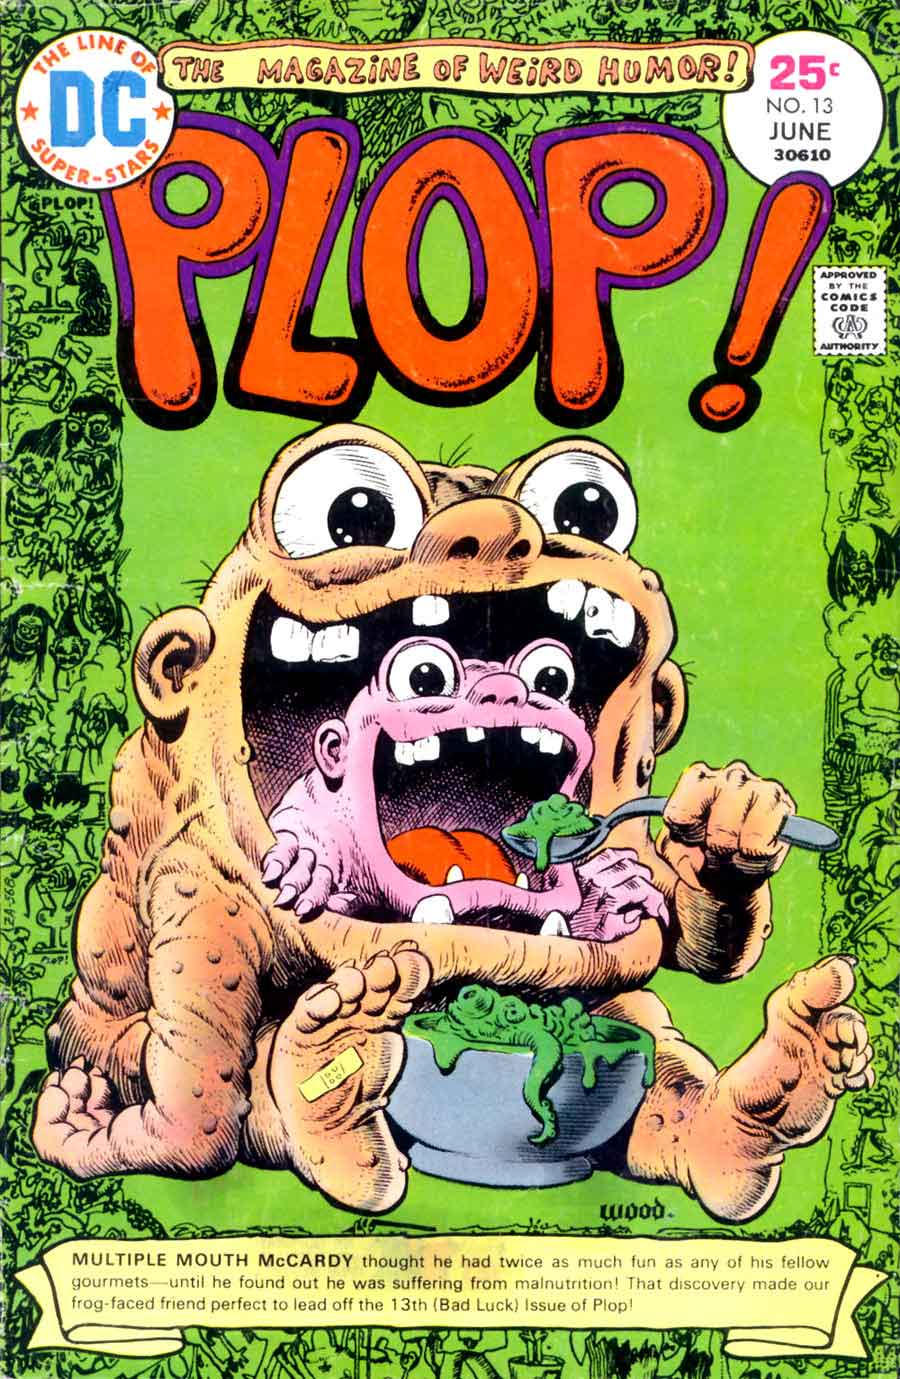 Plop v1 #13 dc 1970s bronze age comic book cover art by Wally Wood